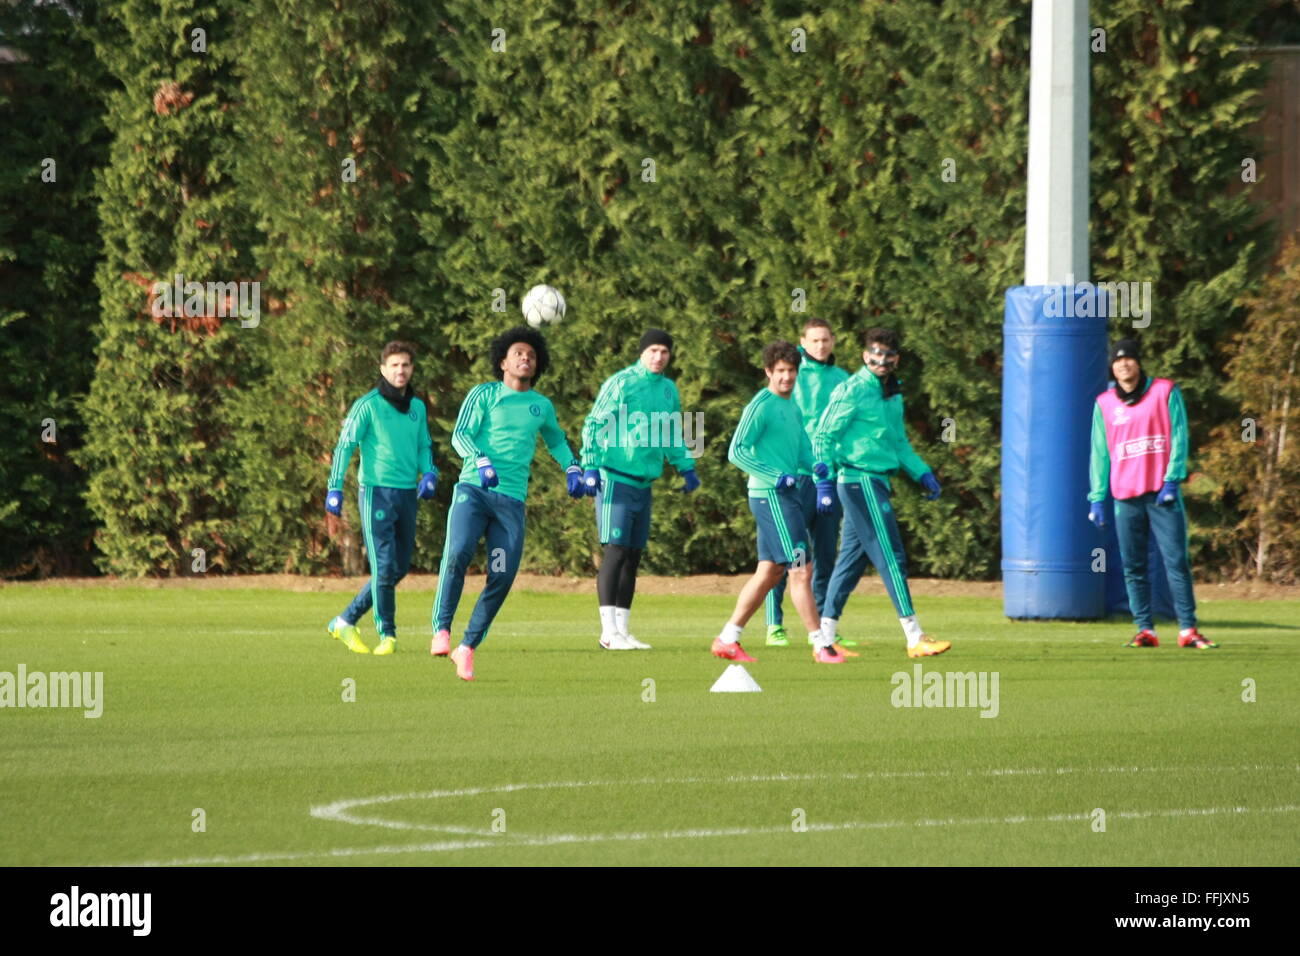 John Terry (English) trains with team mates as Chelsea Football Club prepares for Champ[ions League knock-out action - Stock Image